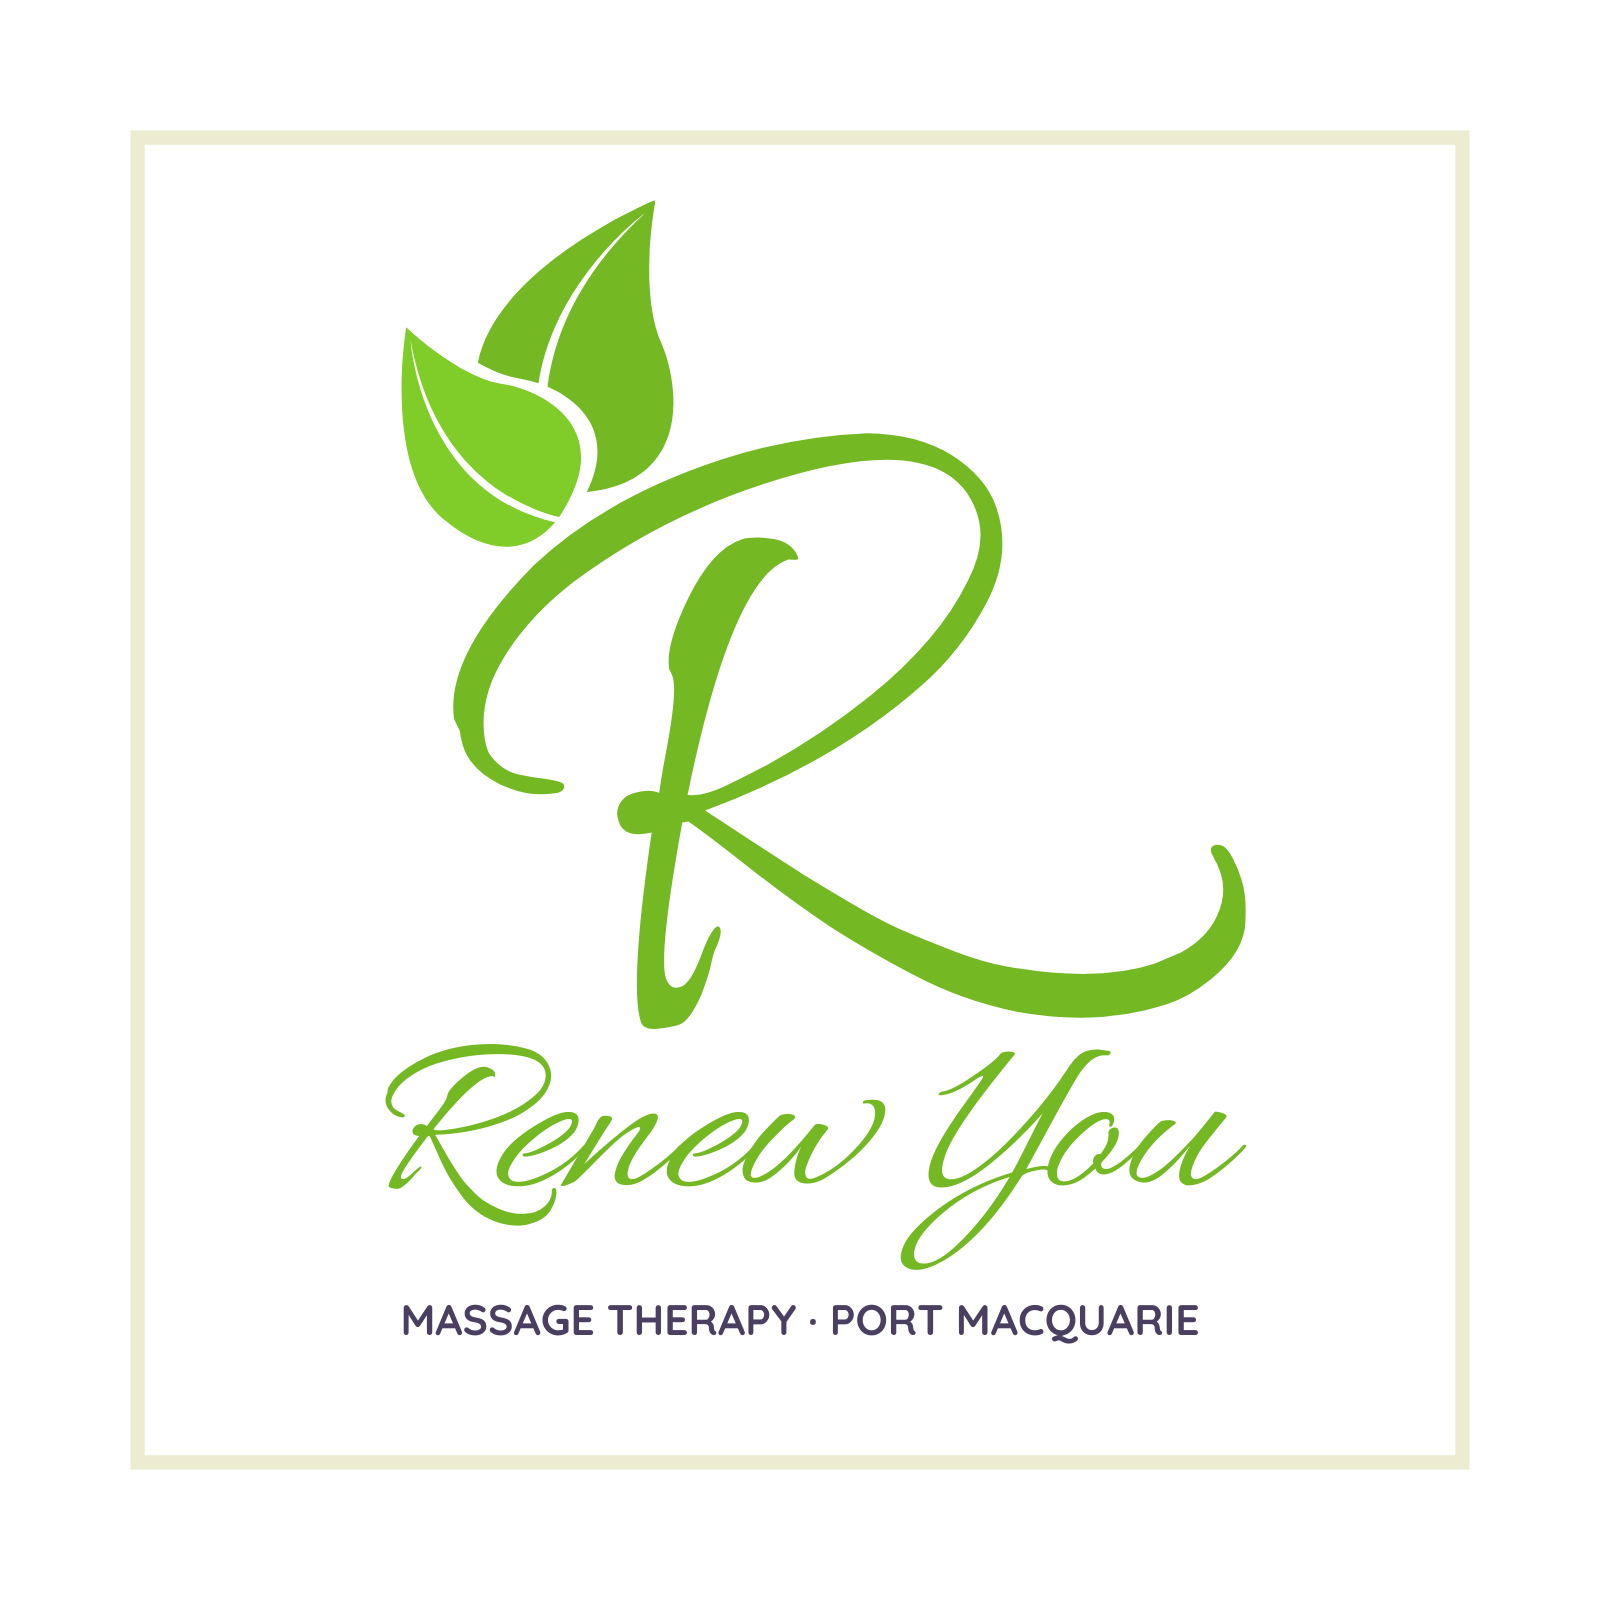 Renew You Massage Therapy Port Macquarie